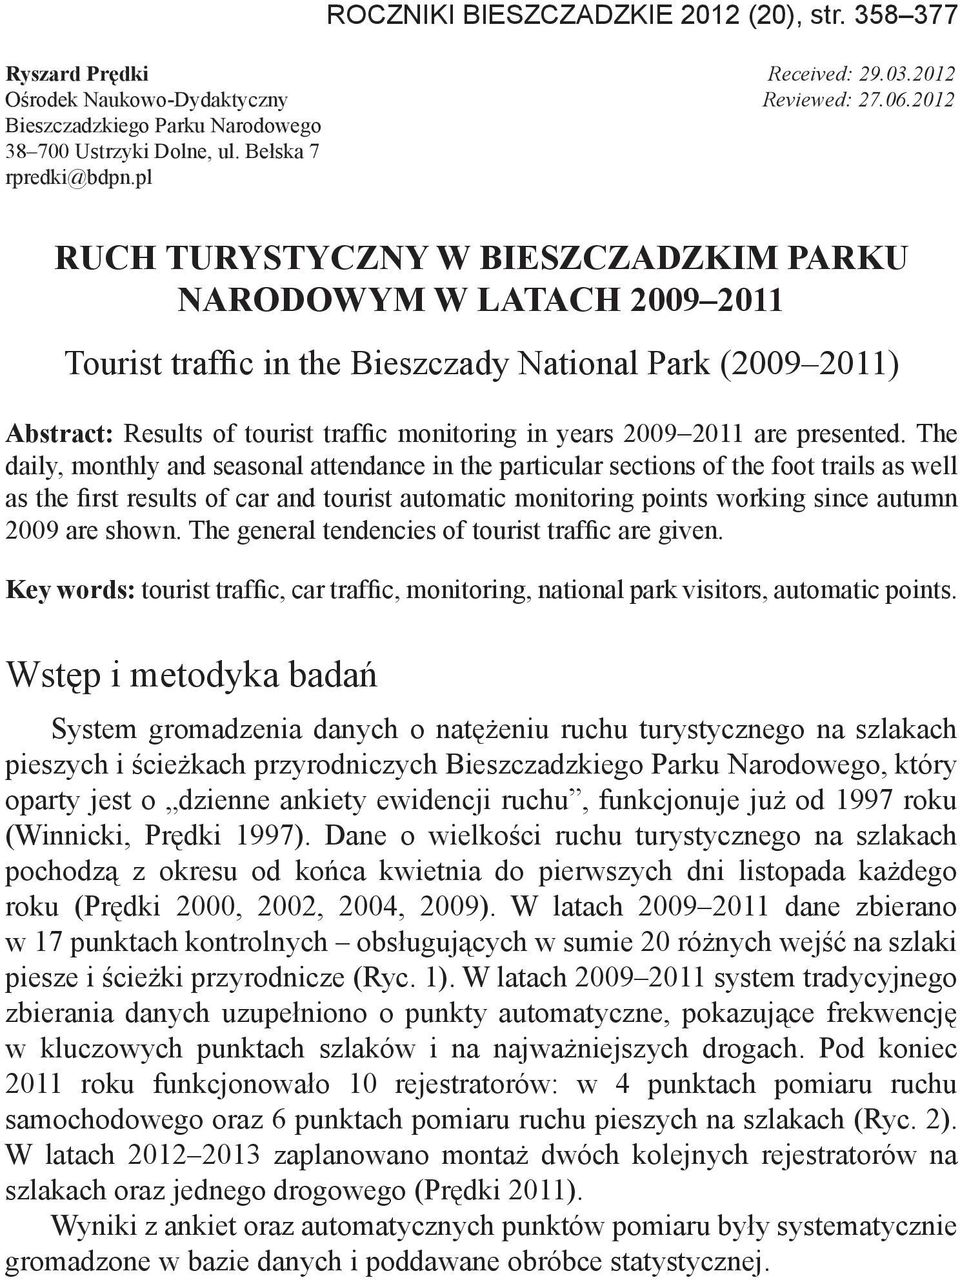 pl RUCH TURYSTYCZNY W BIESZCZADZKIM PARKU NARODOWYM W LATACH 2009 2011 Tourist traffic in the Bieszczady National Park (2009 2011) Abstract: Results of tourist traffic monitoring in years 2009 2011